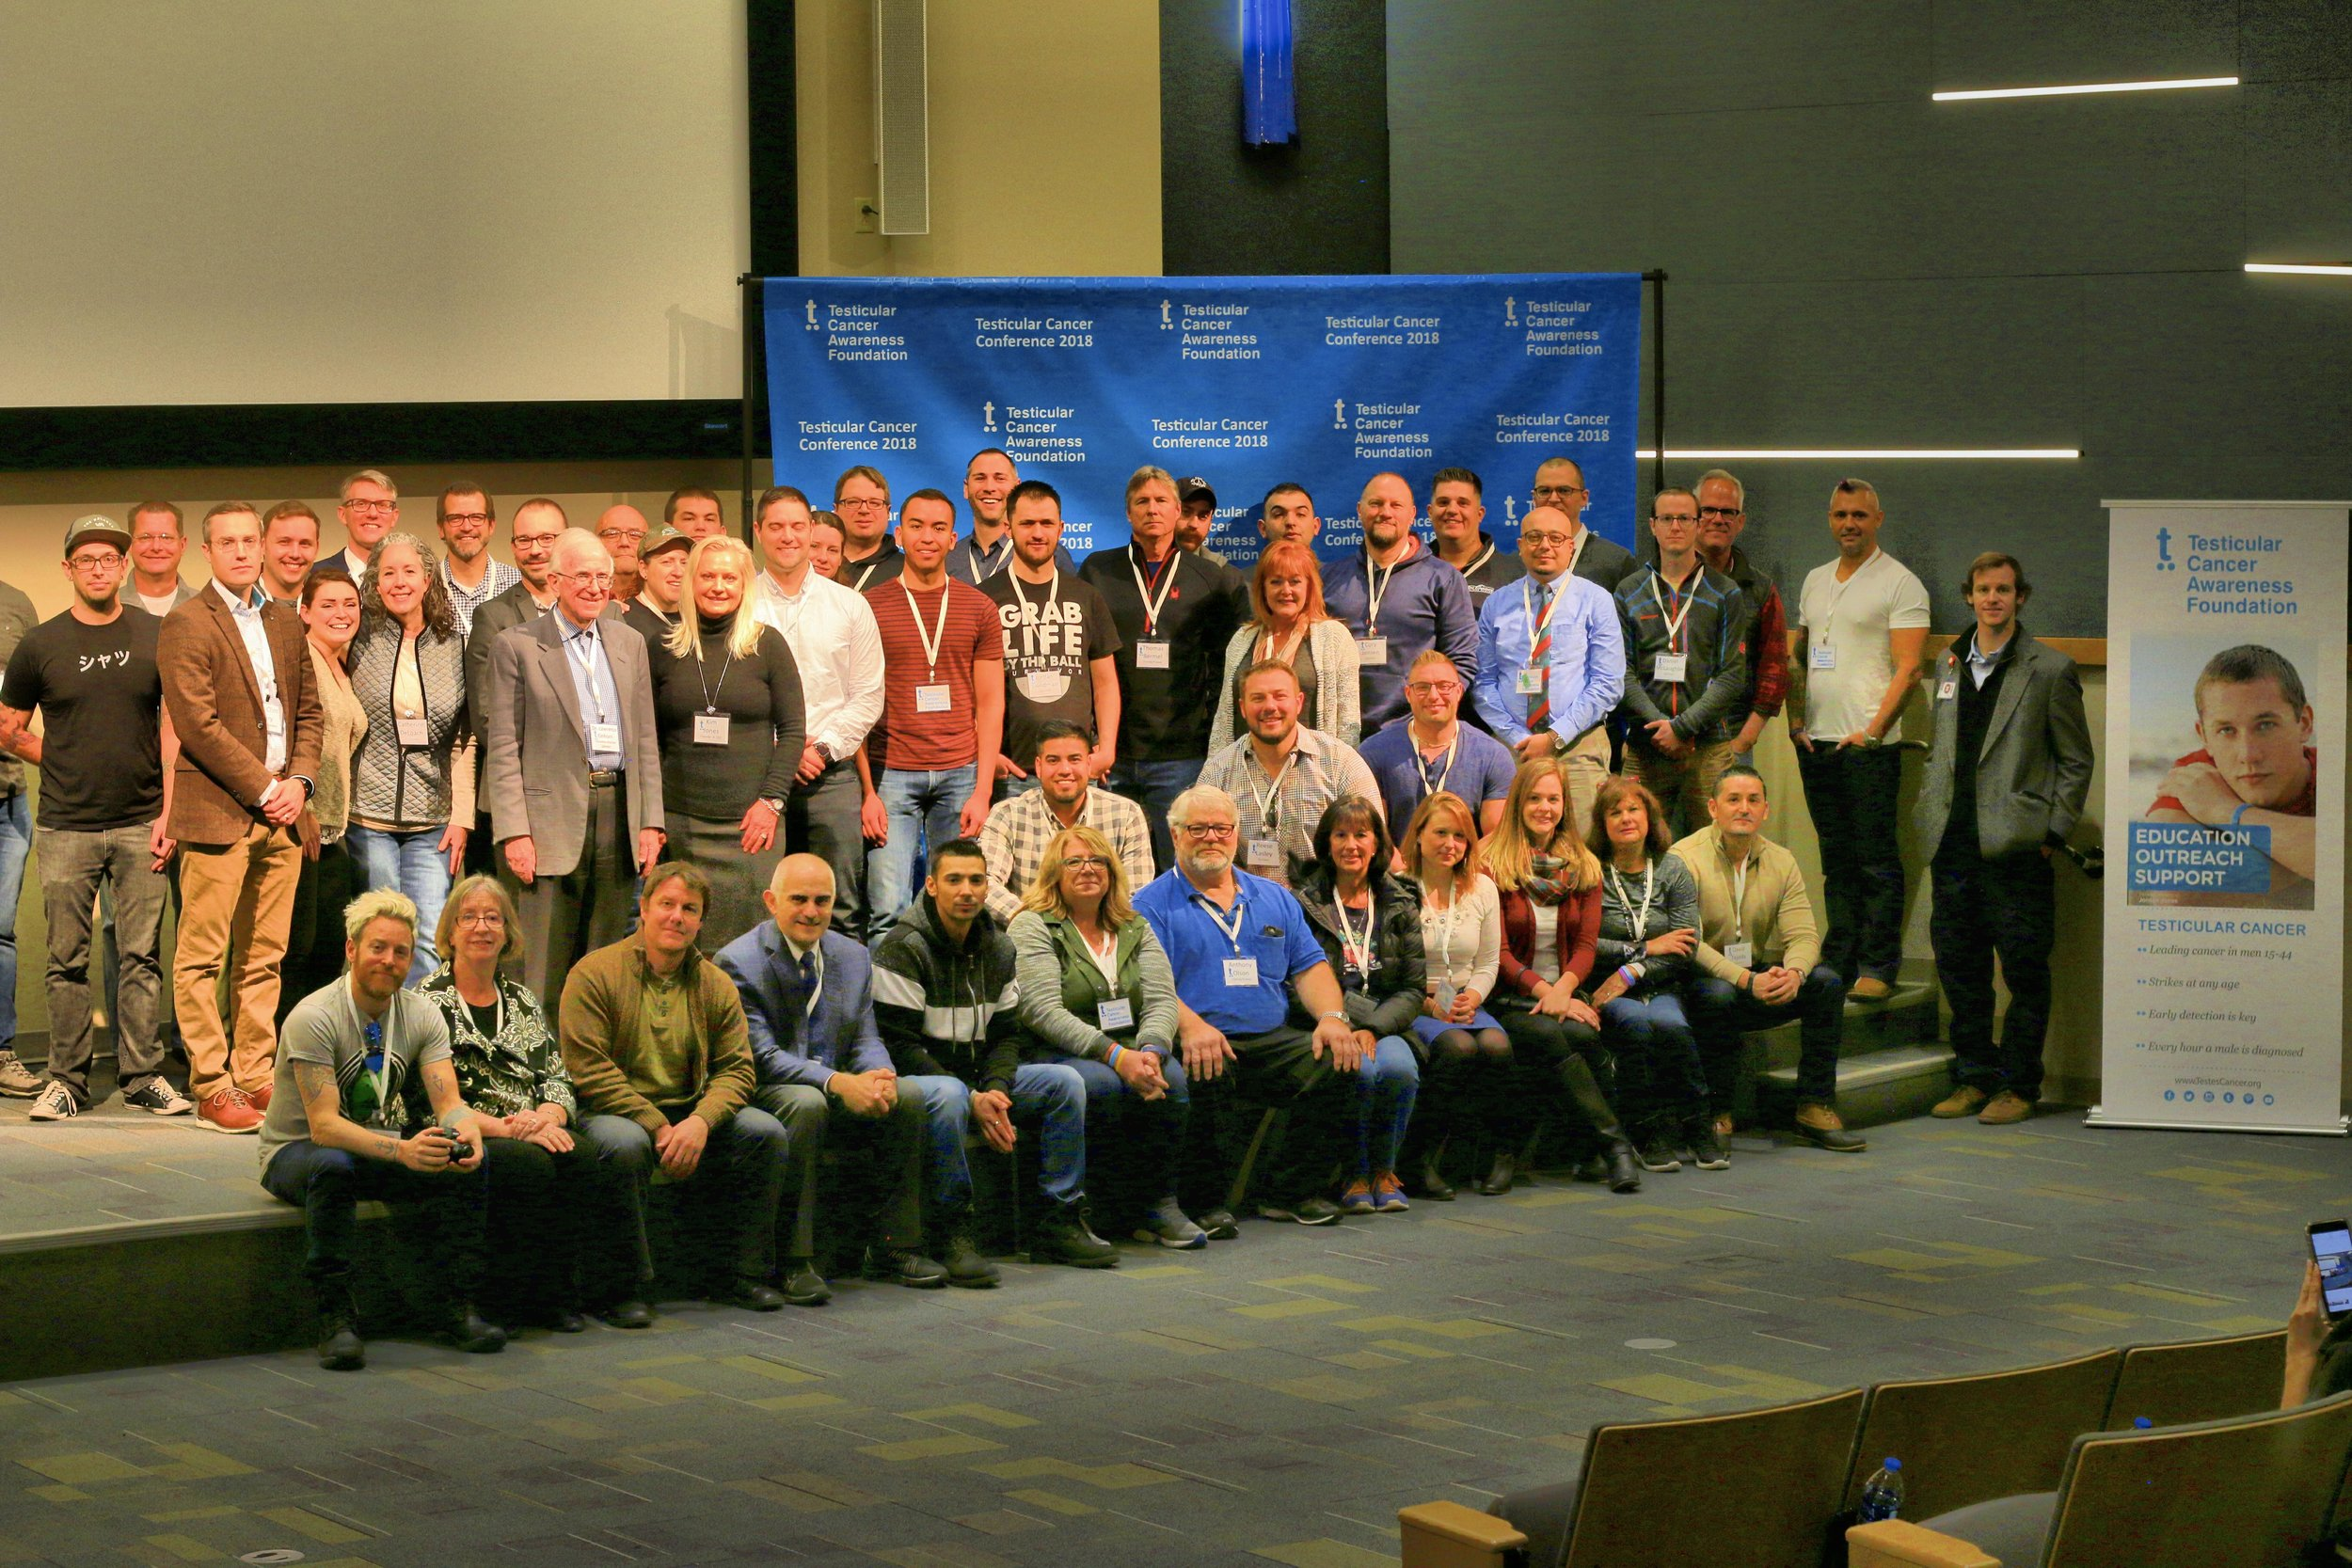 conference 2018.jpg